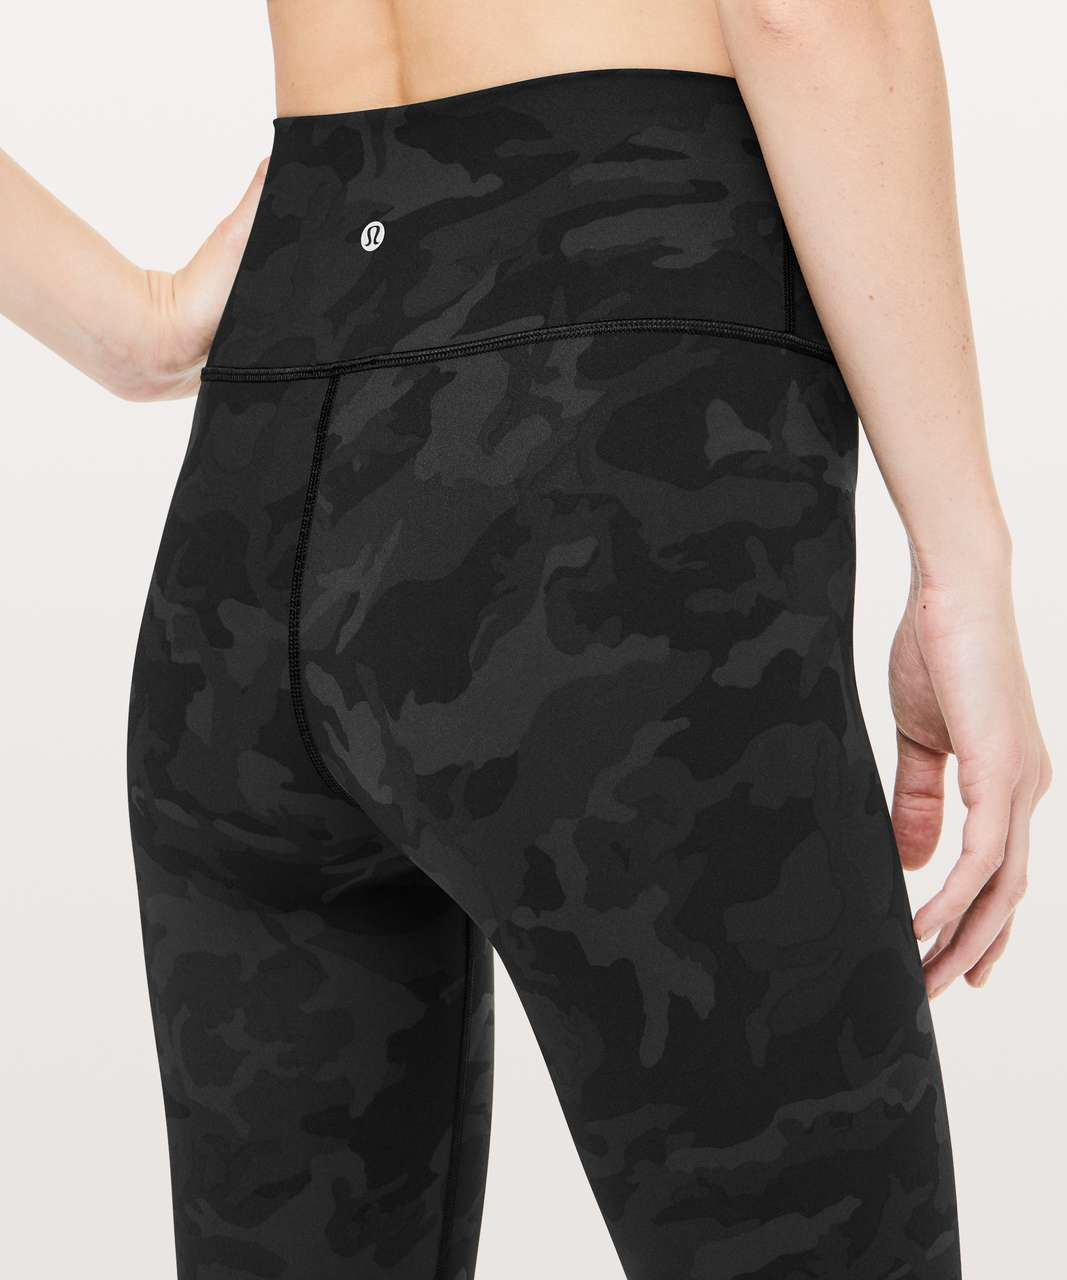 "Lululemon Wunder Under Hi-Rise Tight *Full-On Luxtreme 28"" - Incognito Camo Multi Grey"